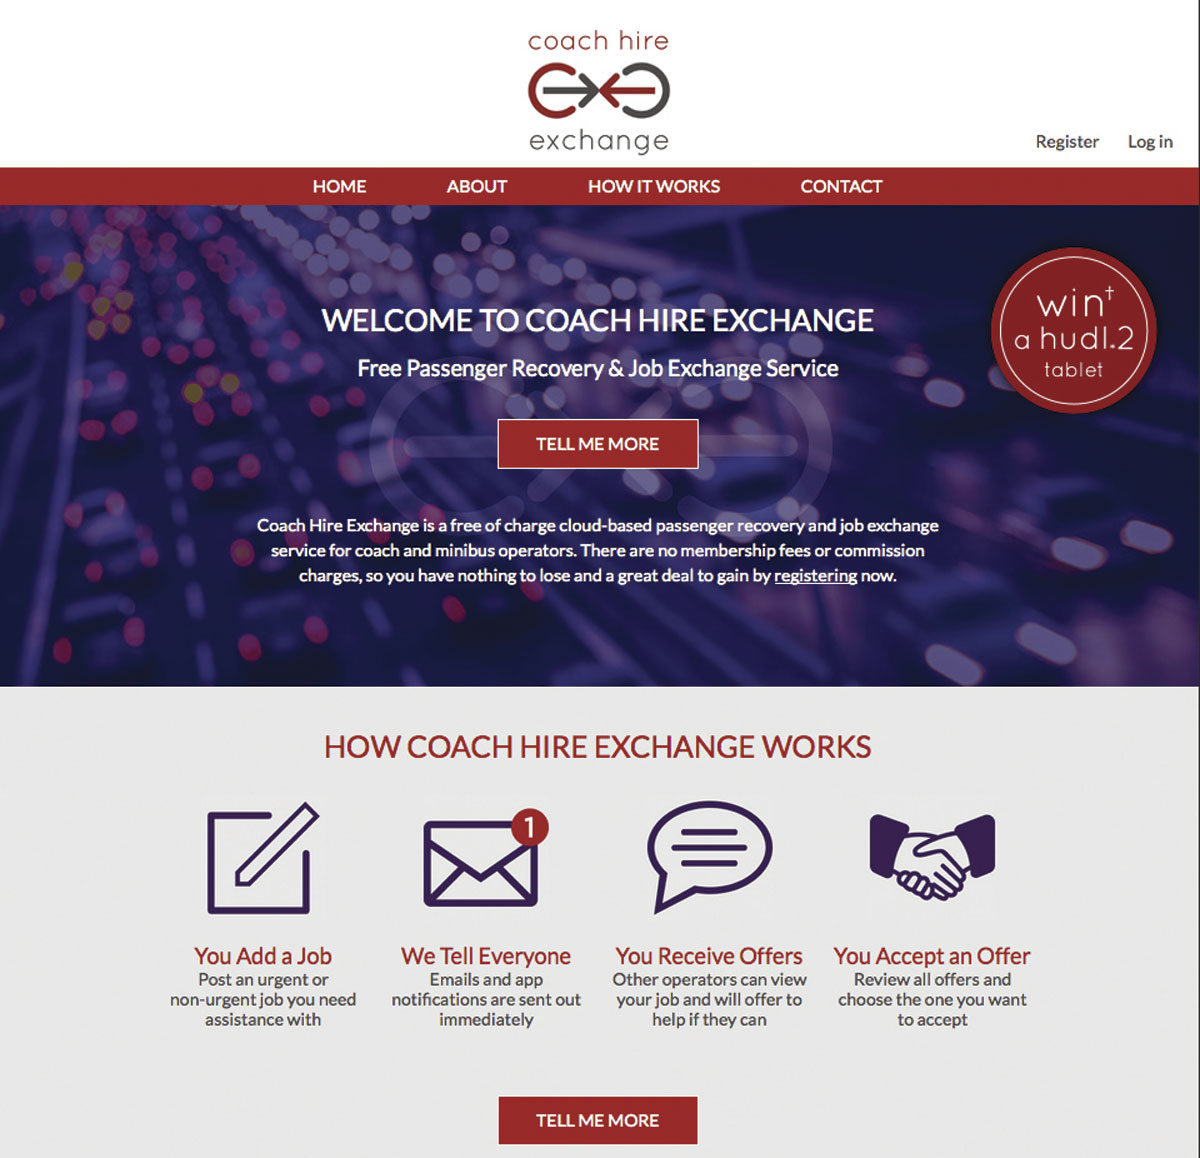 The home page of Coach Hire Exchange